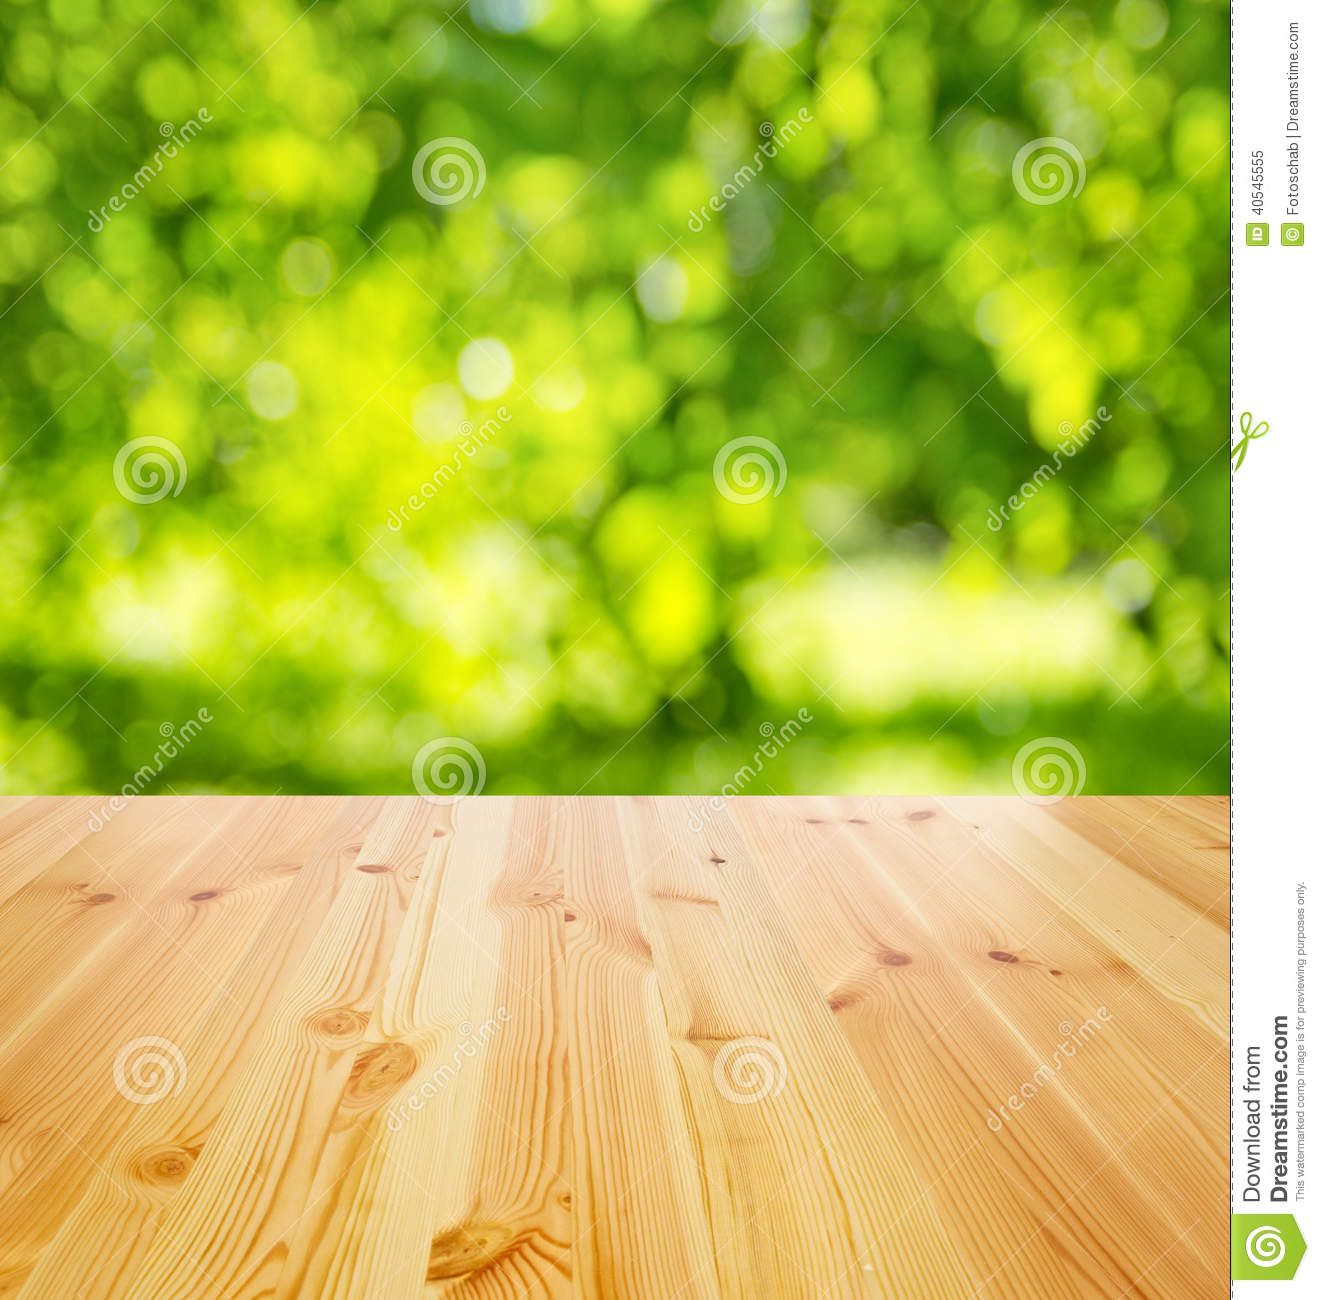 Empty Wooden Table Stock Photo - Image: 40545555